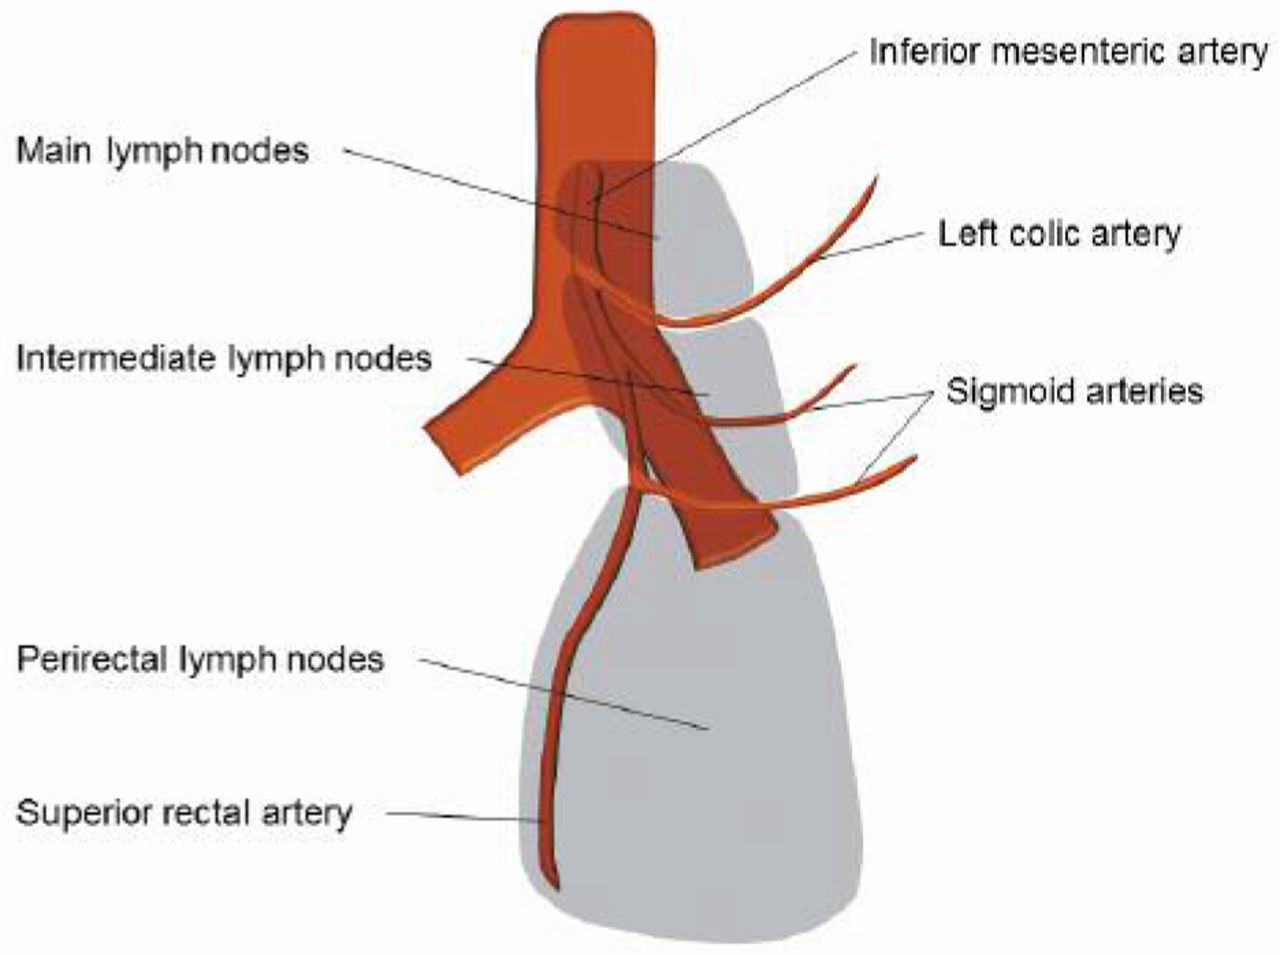 Index Of Estimated Benefit From Lateral Lymph Node Dissection For Middle And Lower Rectal Cancer